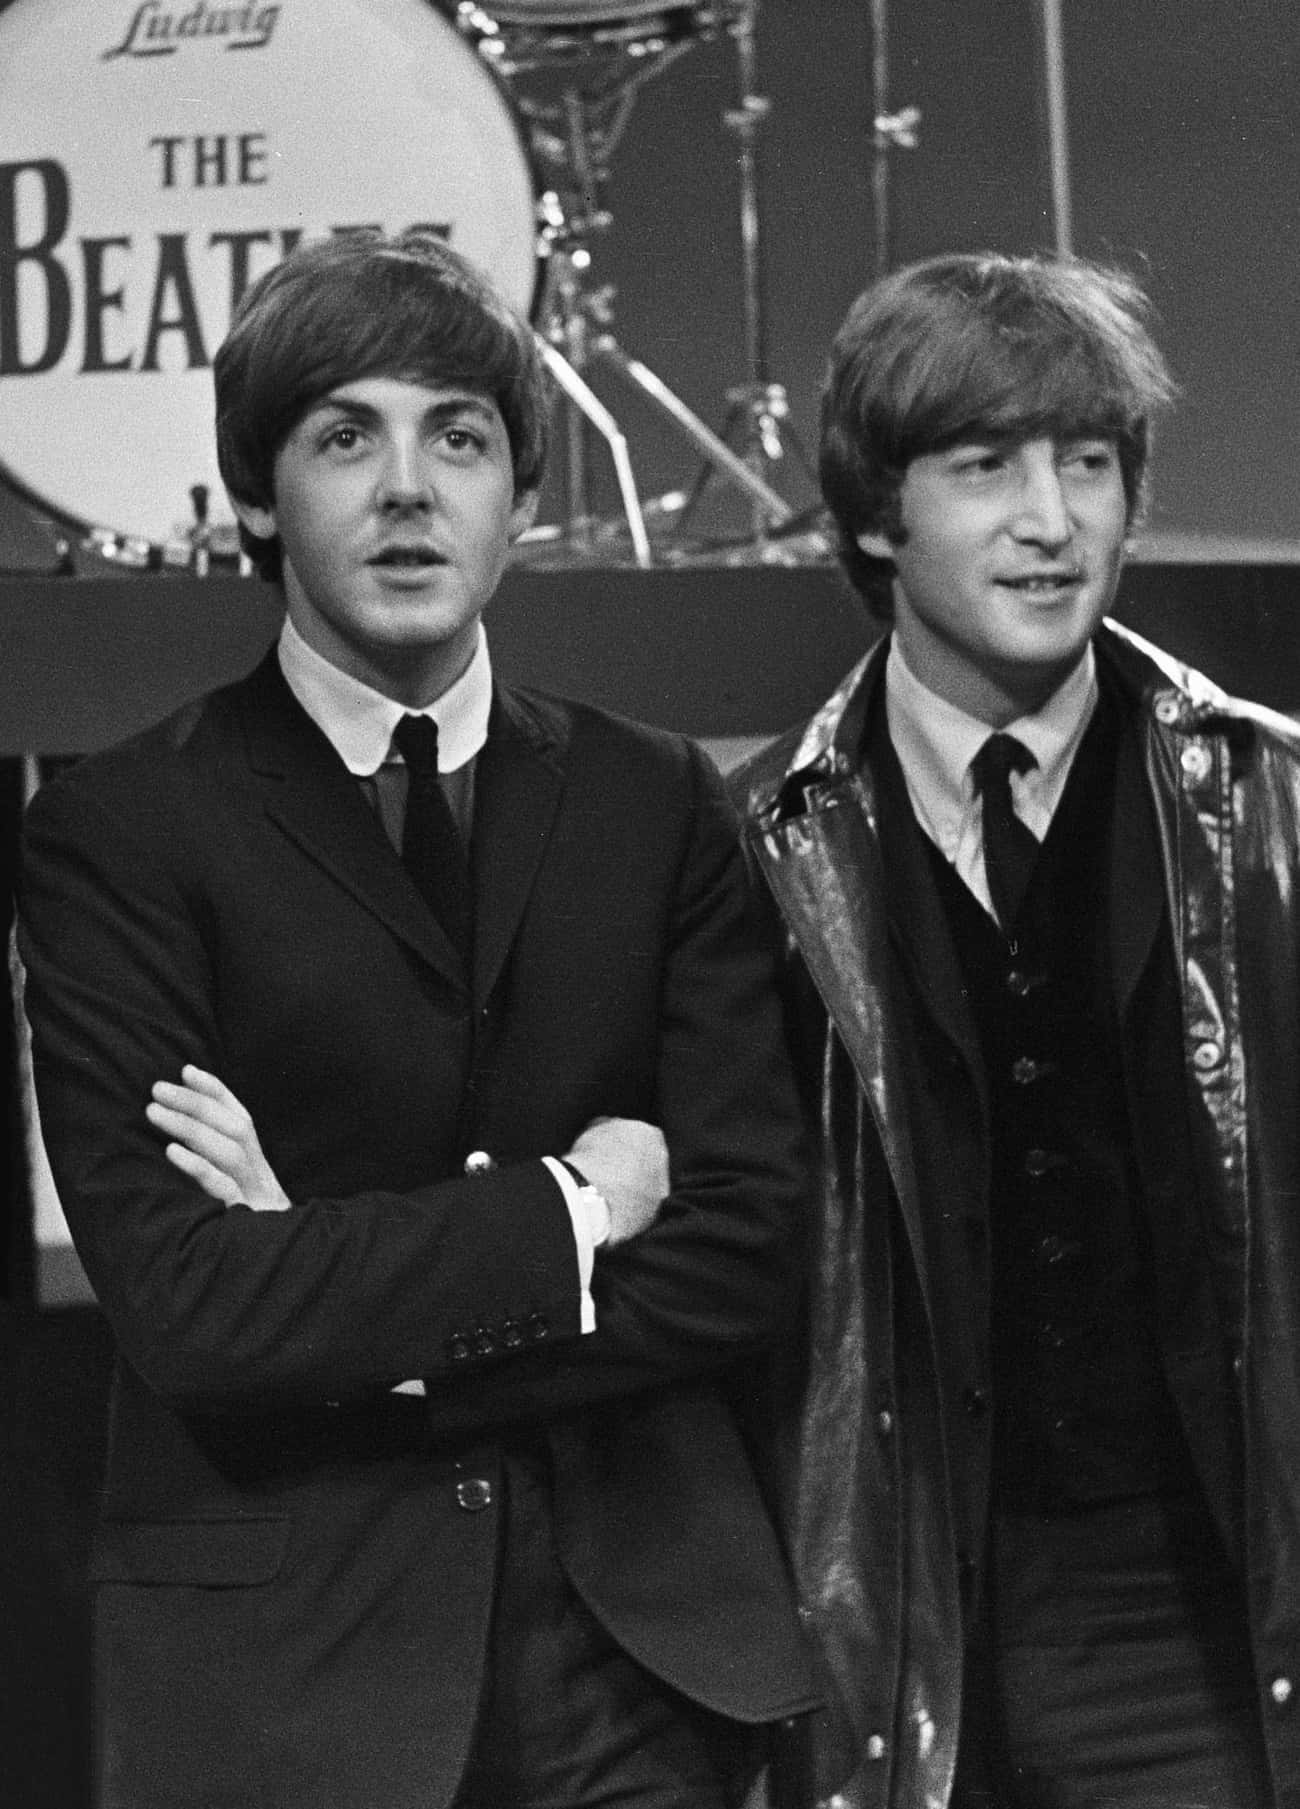 John Lennon And Paul McCartney is listed (or ranked) 4 on the list Behind The Scenes Of The Beatles' 'Sgt. Pepper's Lonely Hearts Club Band'